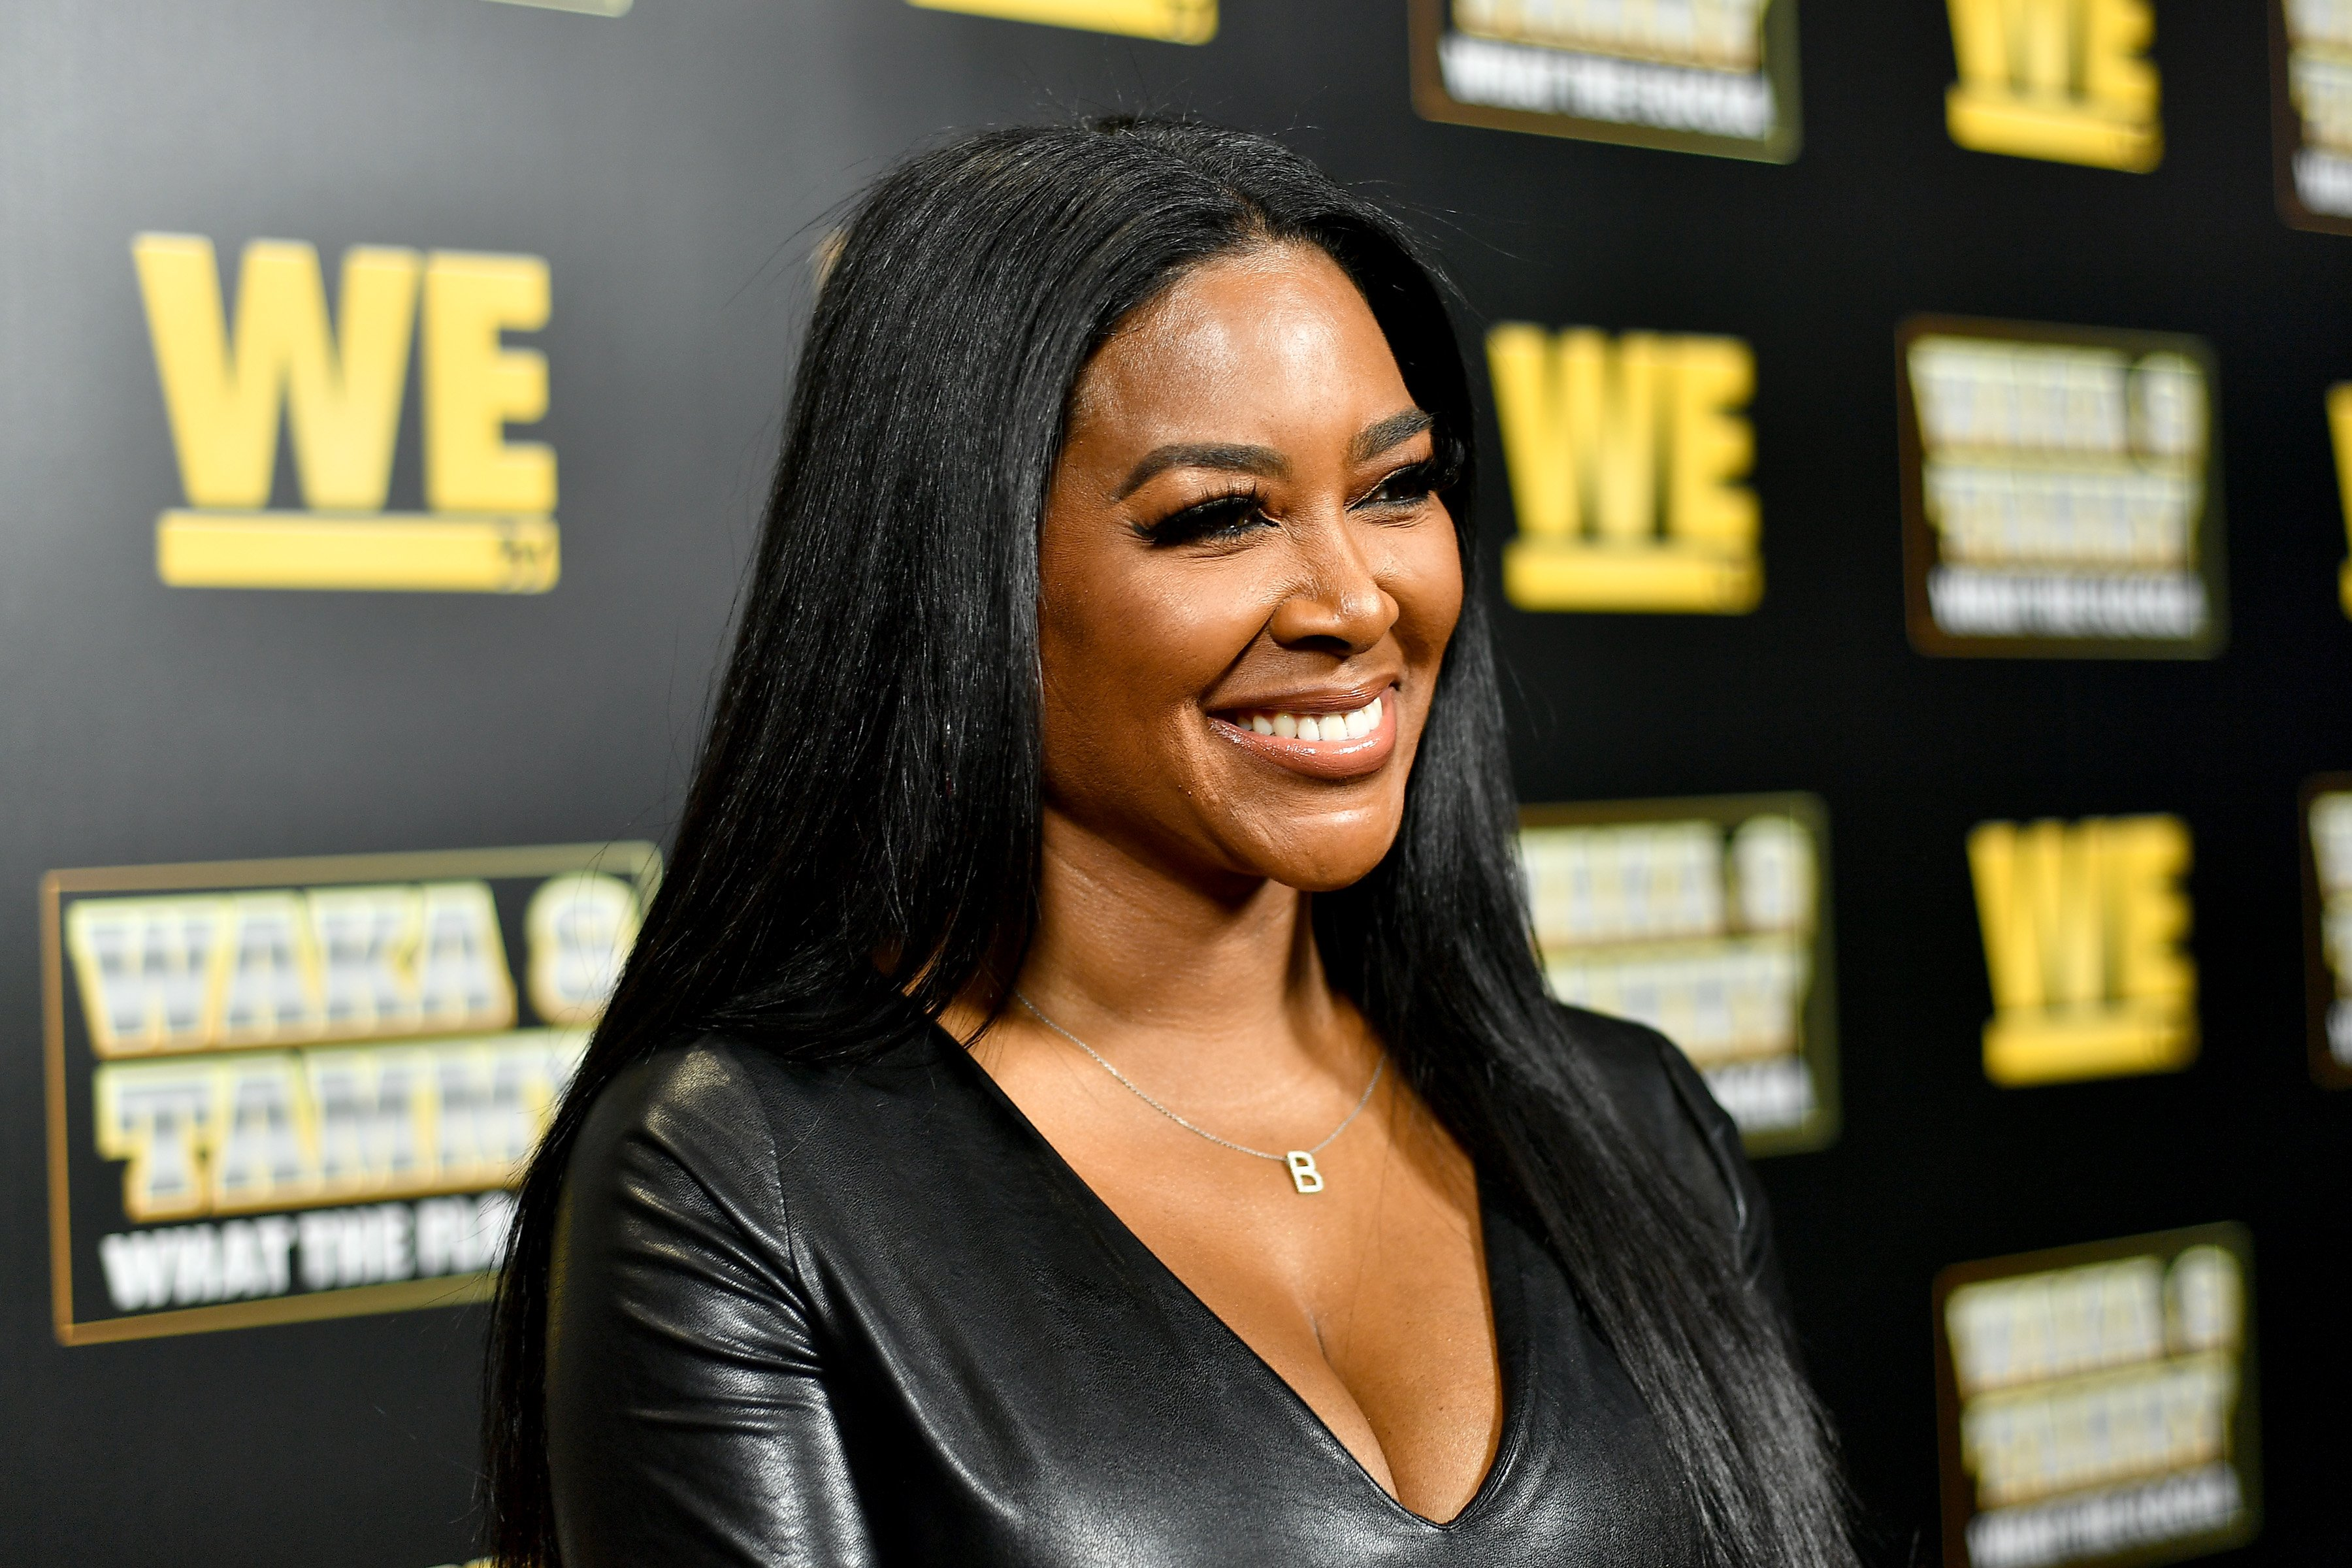 """Kenya Moore at Republic for the premiere of """"Waka & Tammy: What The Flocka"""" on March 10, 2020 in Atlanta, Georgia.   Source: Getty Images"""